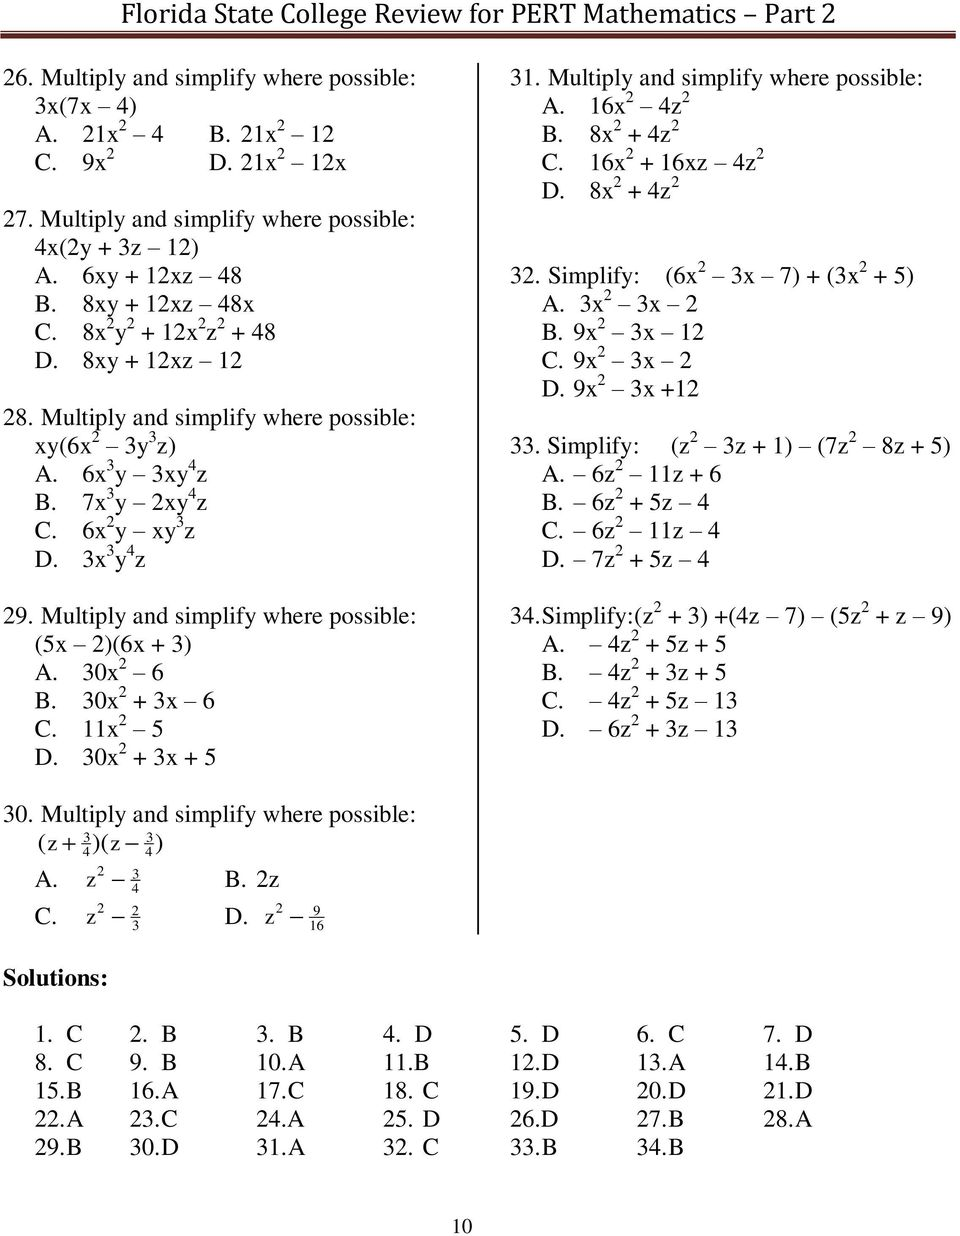 Multiply and simplify where possible: ( )( + ) 0 0 + 0 +. 12 Florida State  College Review for PERT Mathematics ...